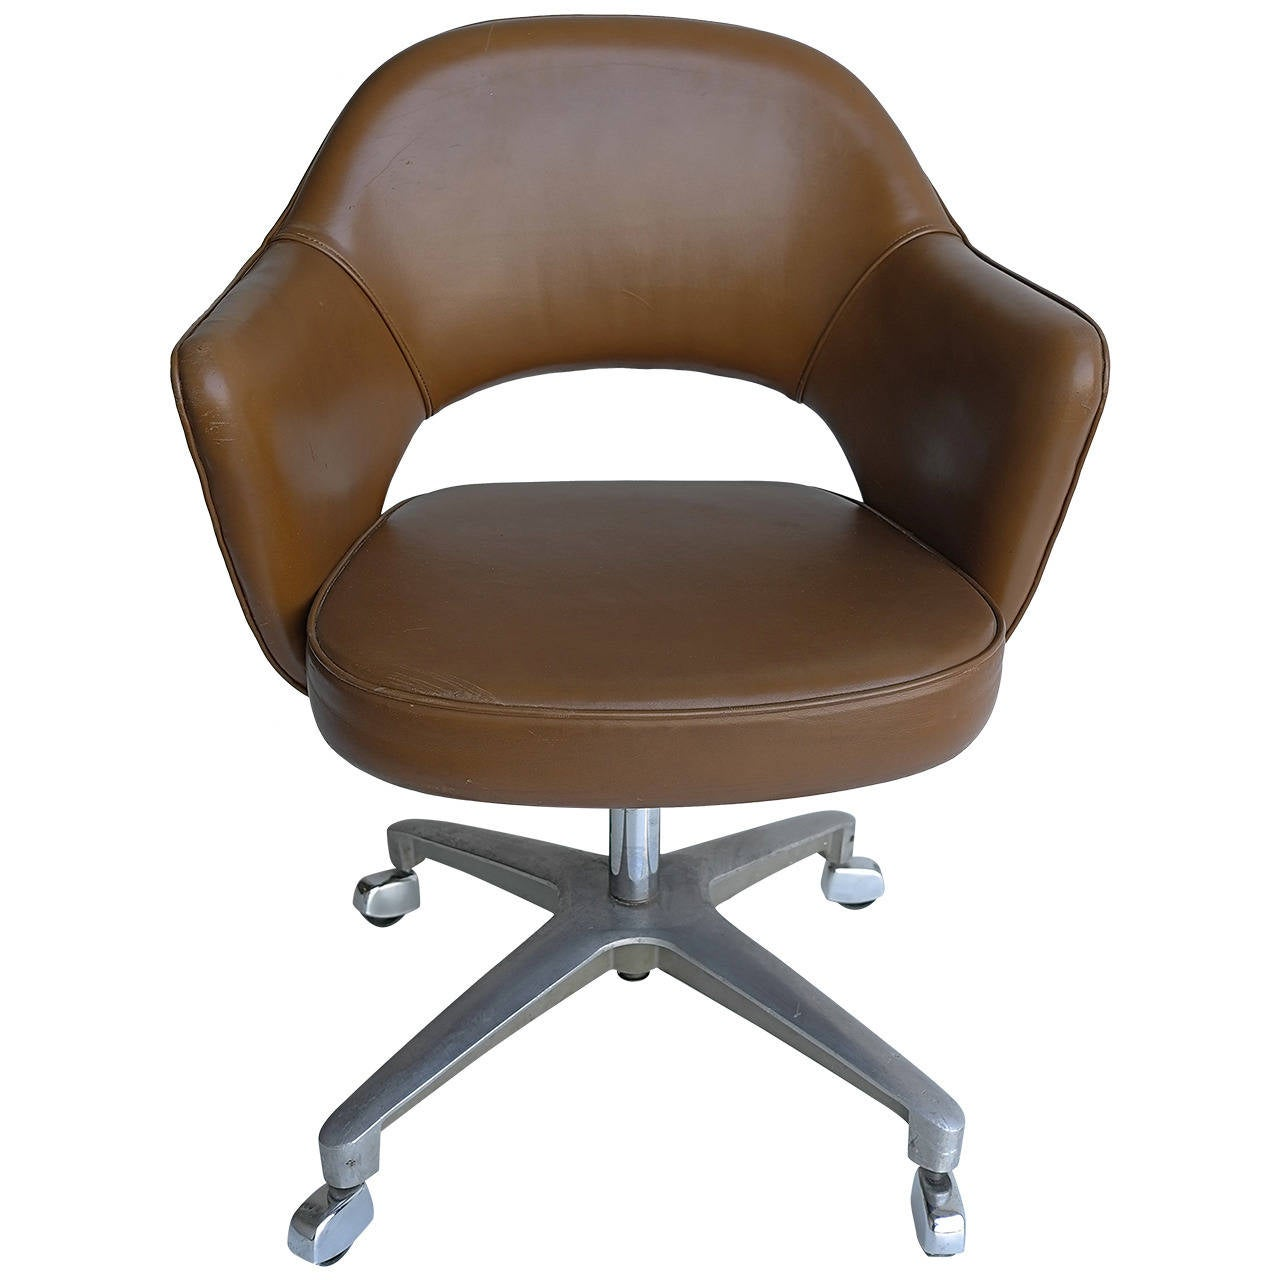 Superb Eero Saarinen Swivel Office Armchair For Knoll For Sale